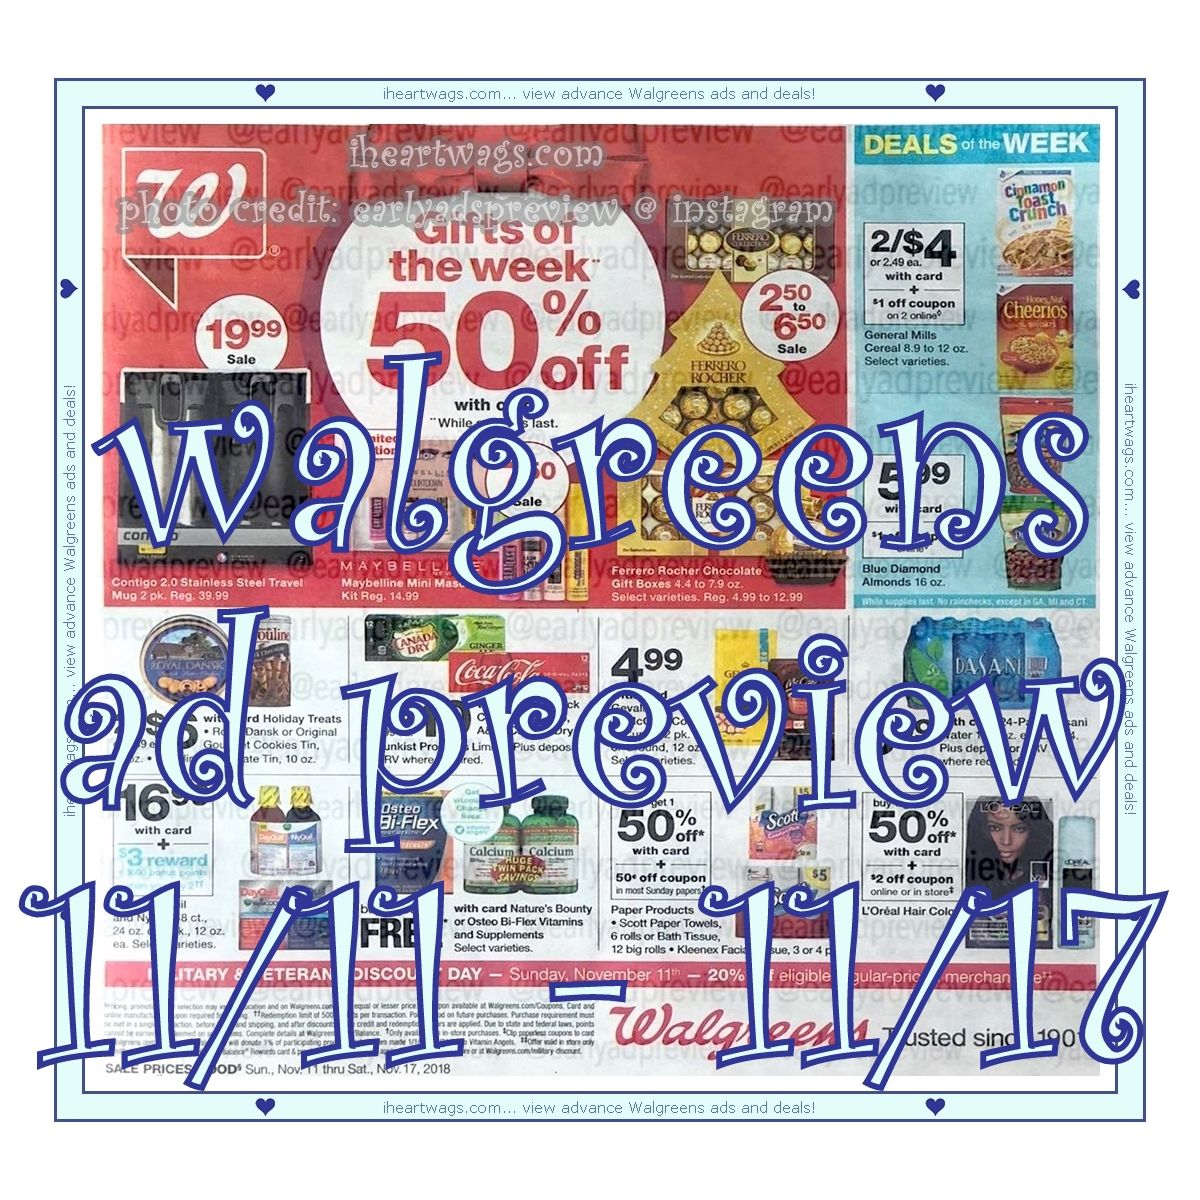 Pin by Erica Hart on i ♥ wags (walgreens) Coupons